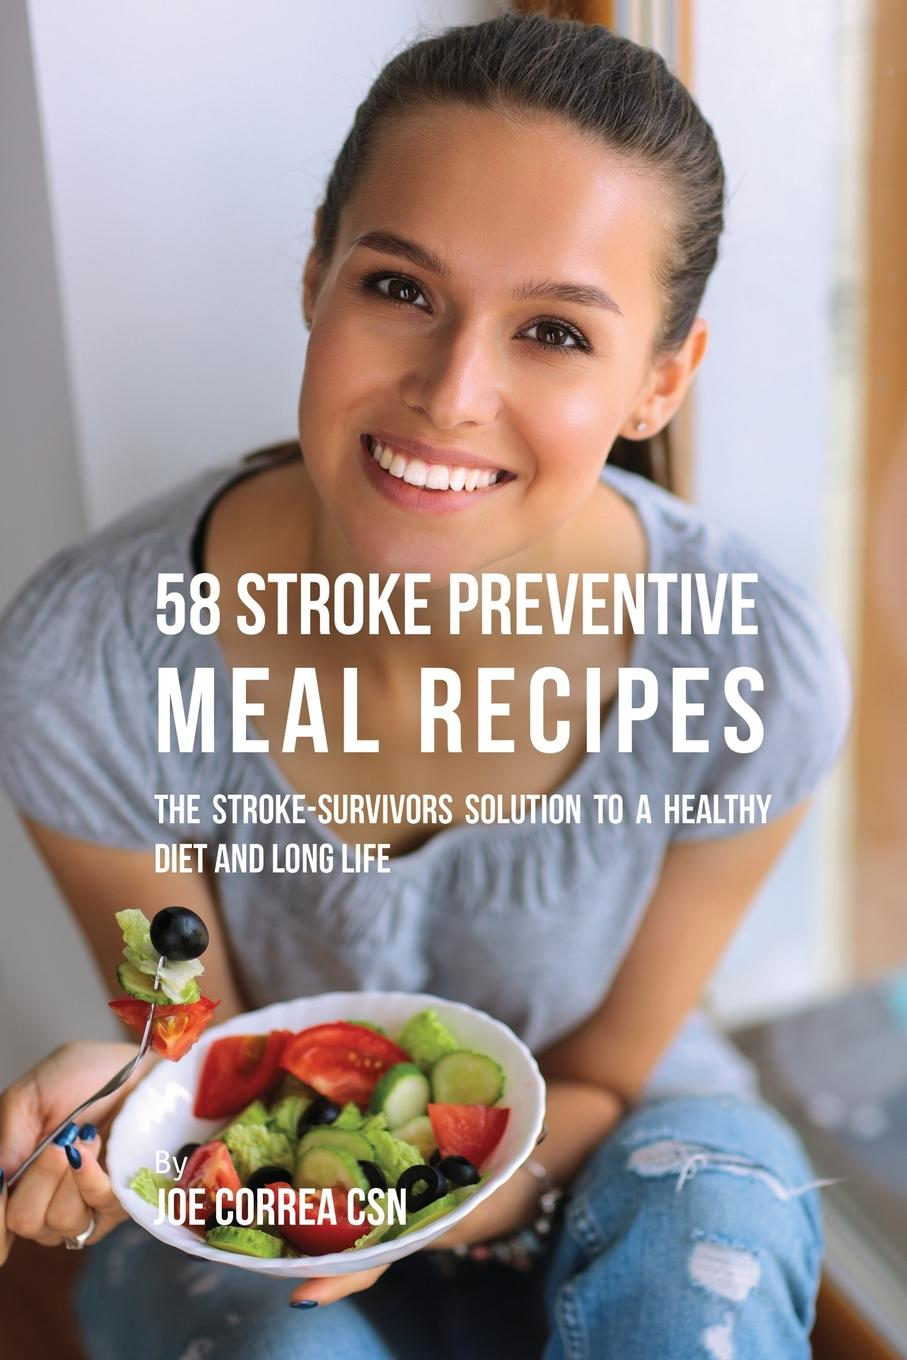 Joe Correa 58 Stroke Preventive Meal Recipes. The Stroke-Survivors Solution to a Healthy Diet and Long Life gait and balance performance in stroke survivors